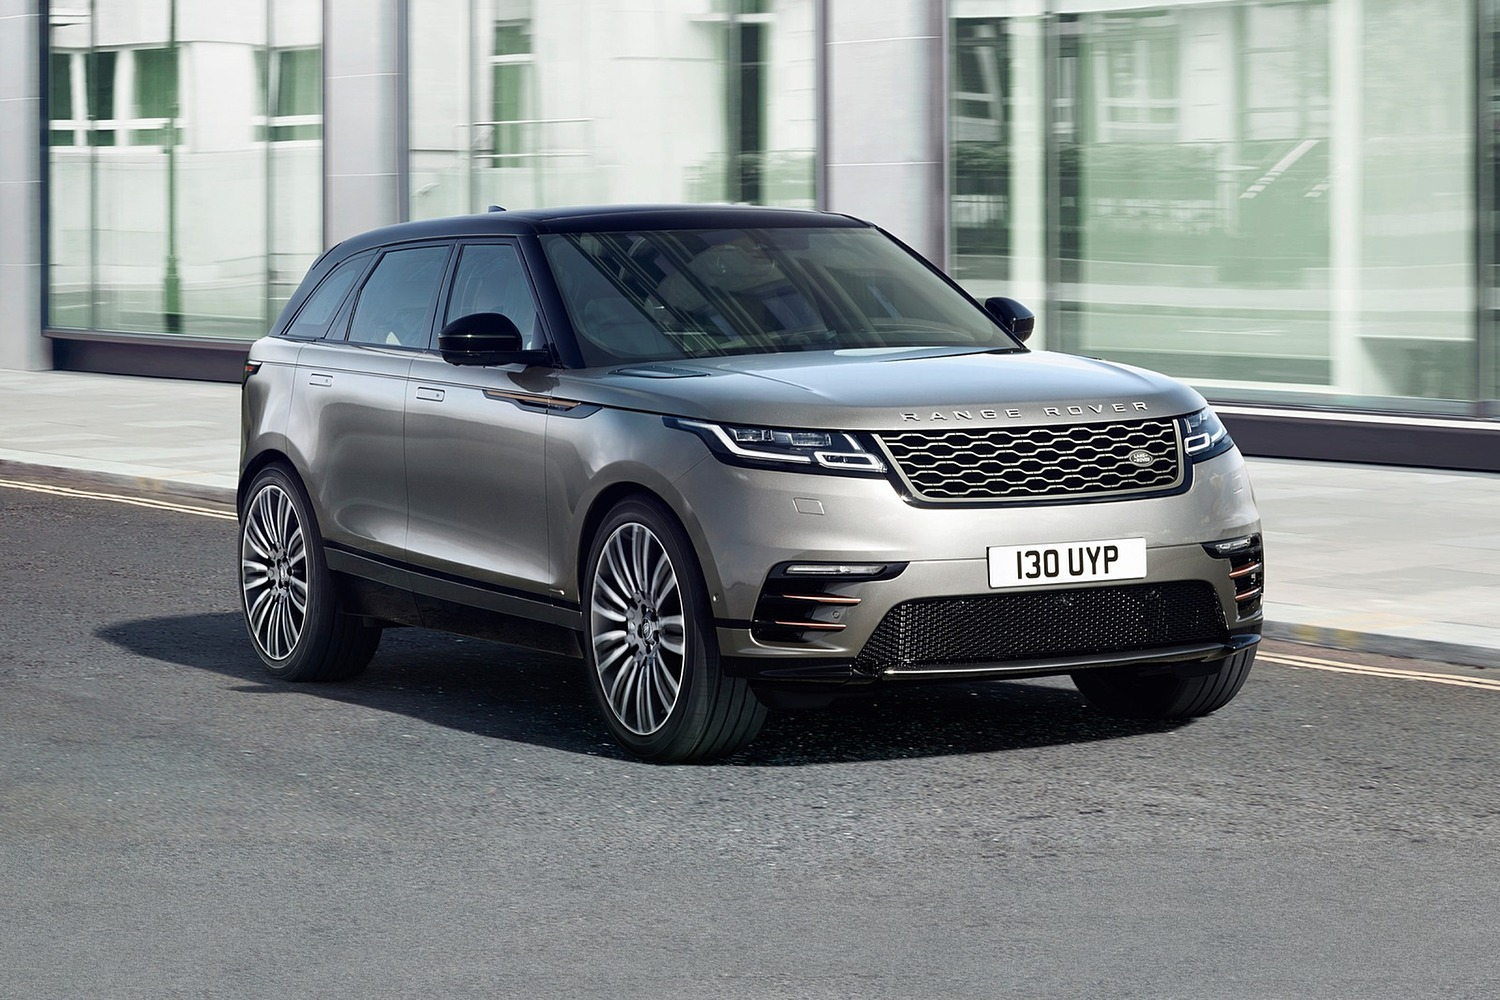 2018 Land Rover Range Rover Velar First Edition 4dr SUV Exterior Shown